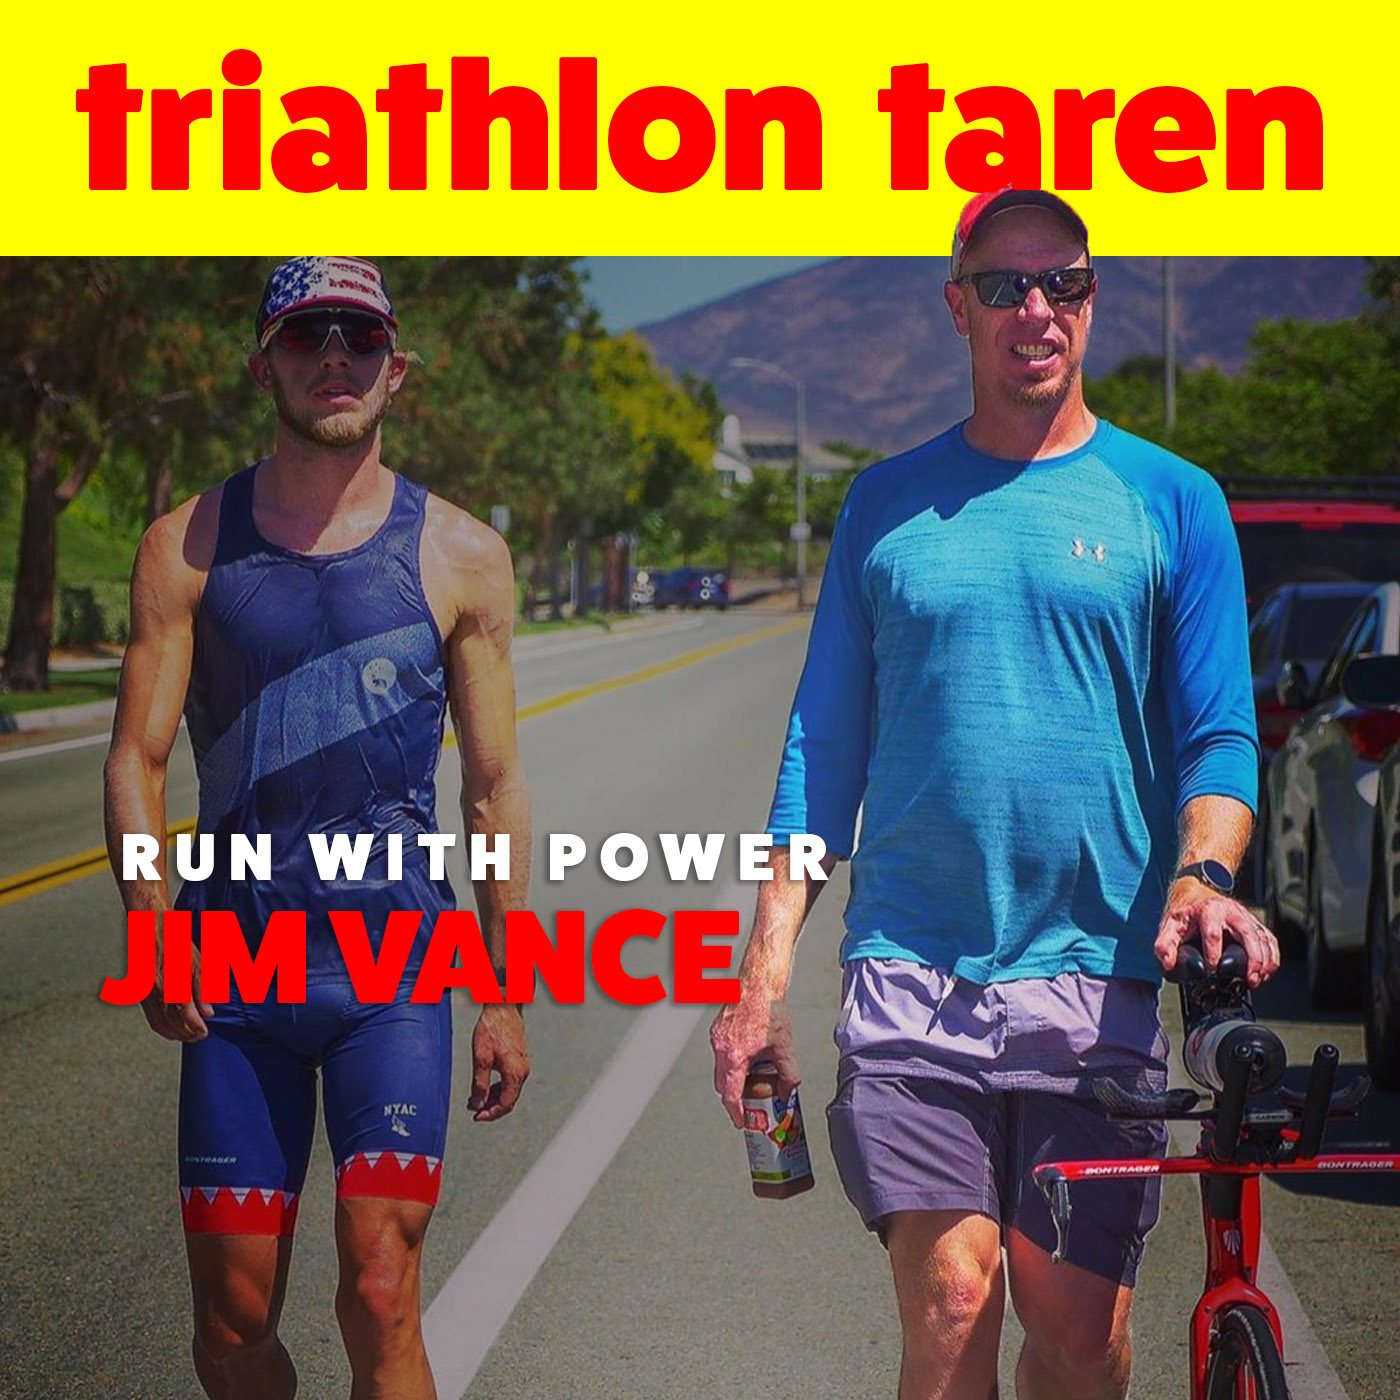 How to Run with Power: Jim Vance